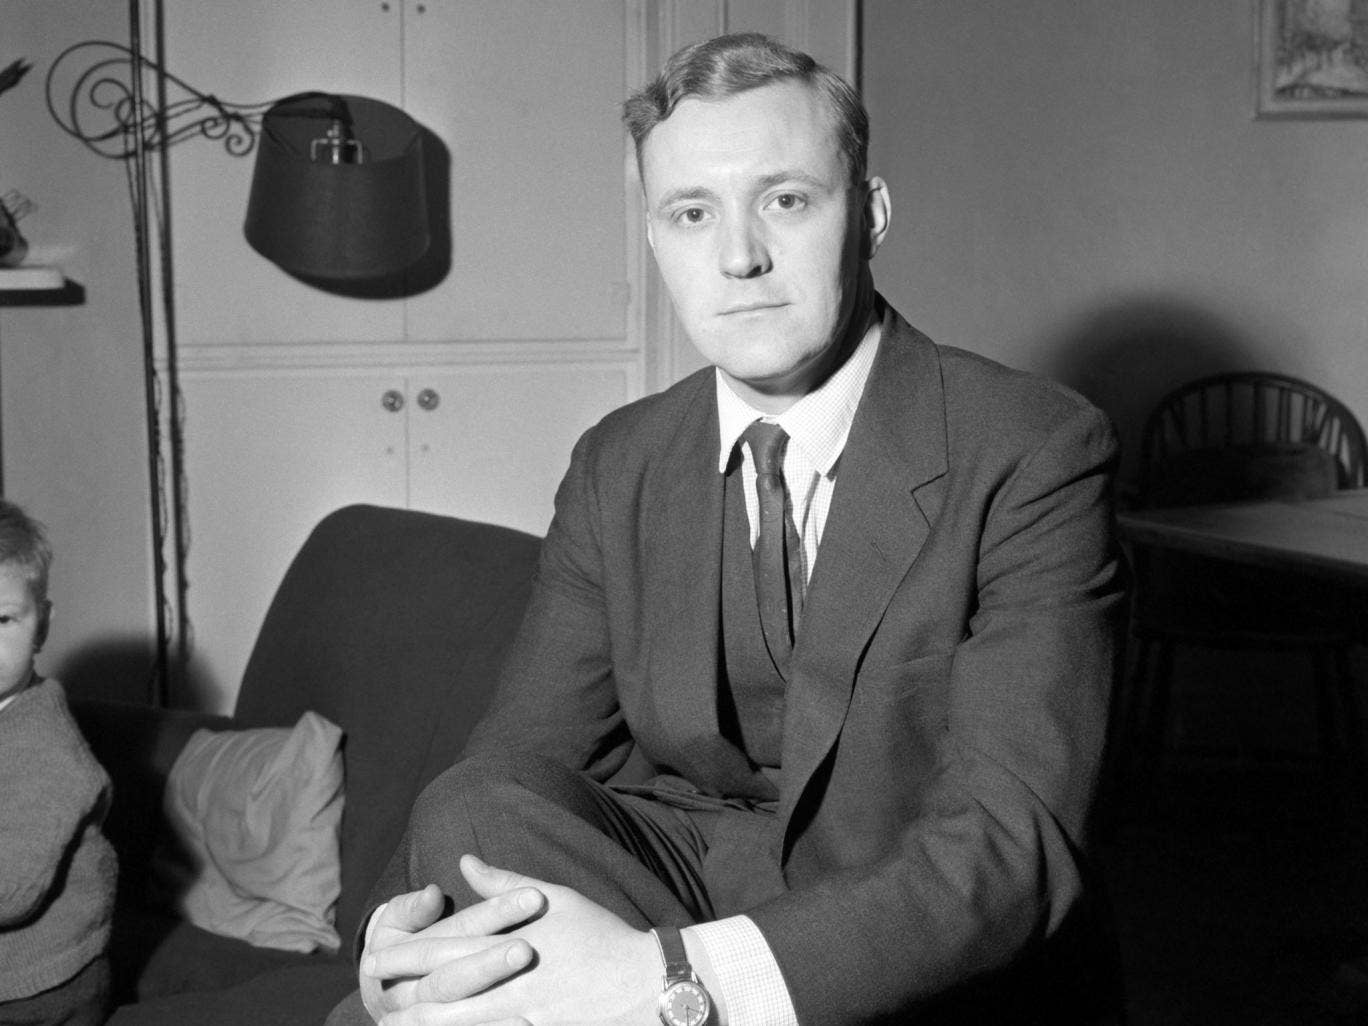 Tony Benn in 1961. He insisted that Parliament was the pinnacle of democracy